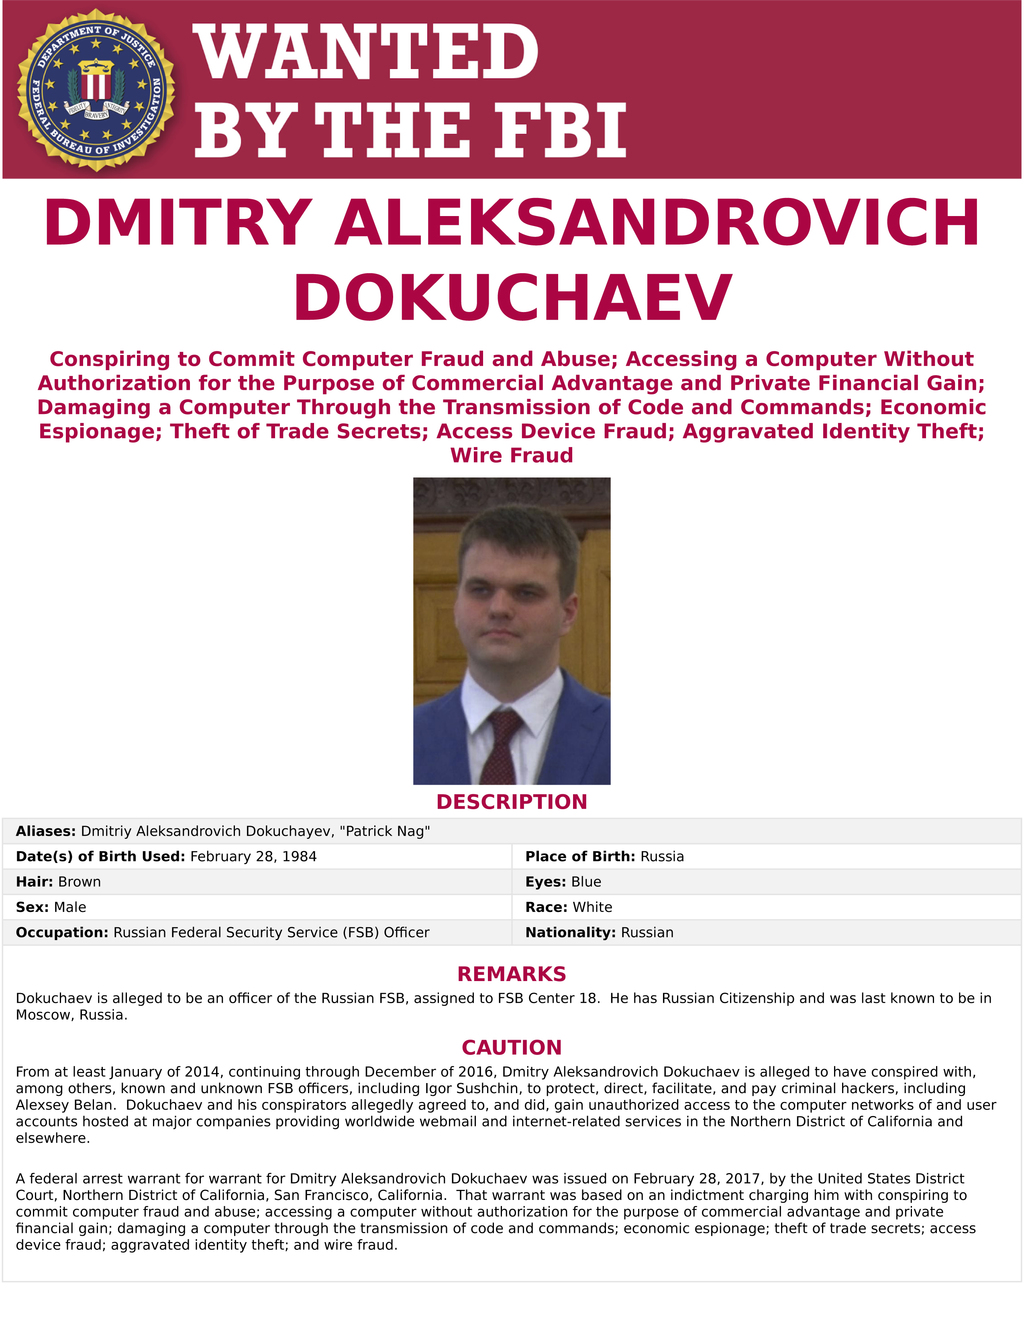 This wanted poster provided by the FBI shows Dmitry Aleksandrovich Dokuchaev, 33, a Russian national and resident. The United States an...